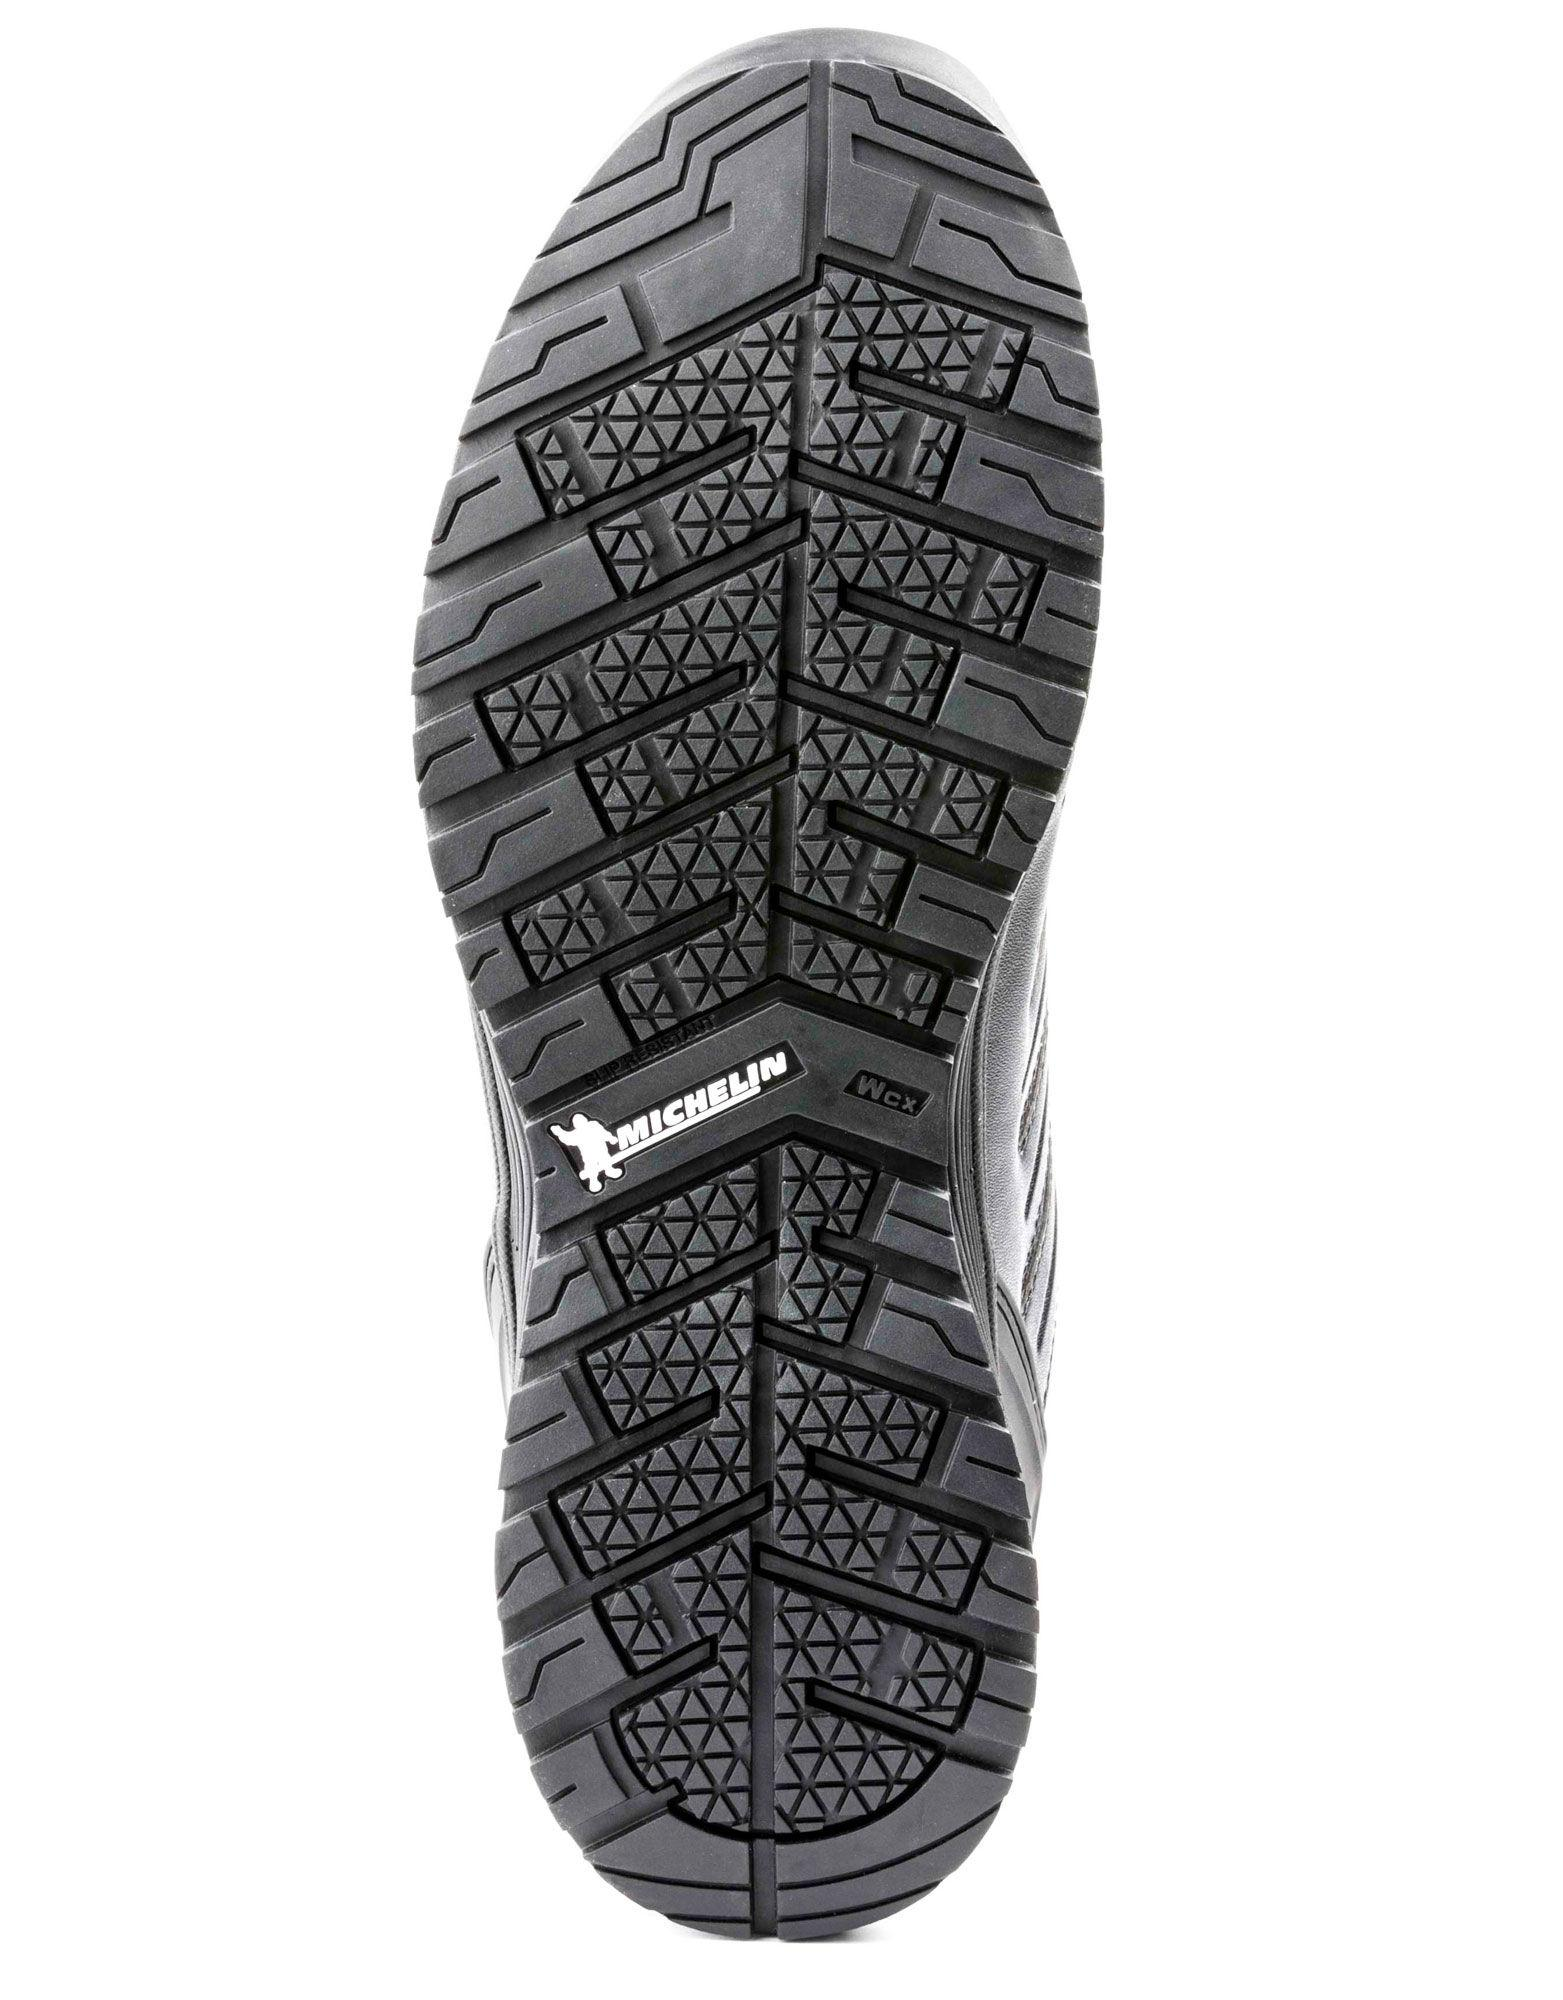 Apex Slip Resistant Shoe With Michelin